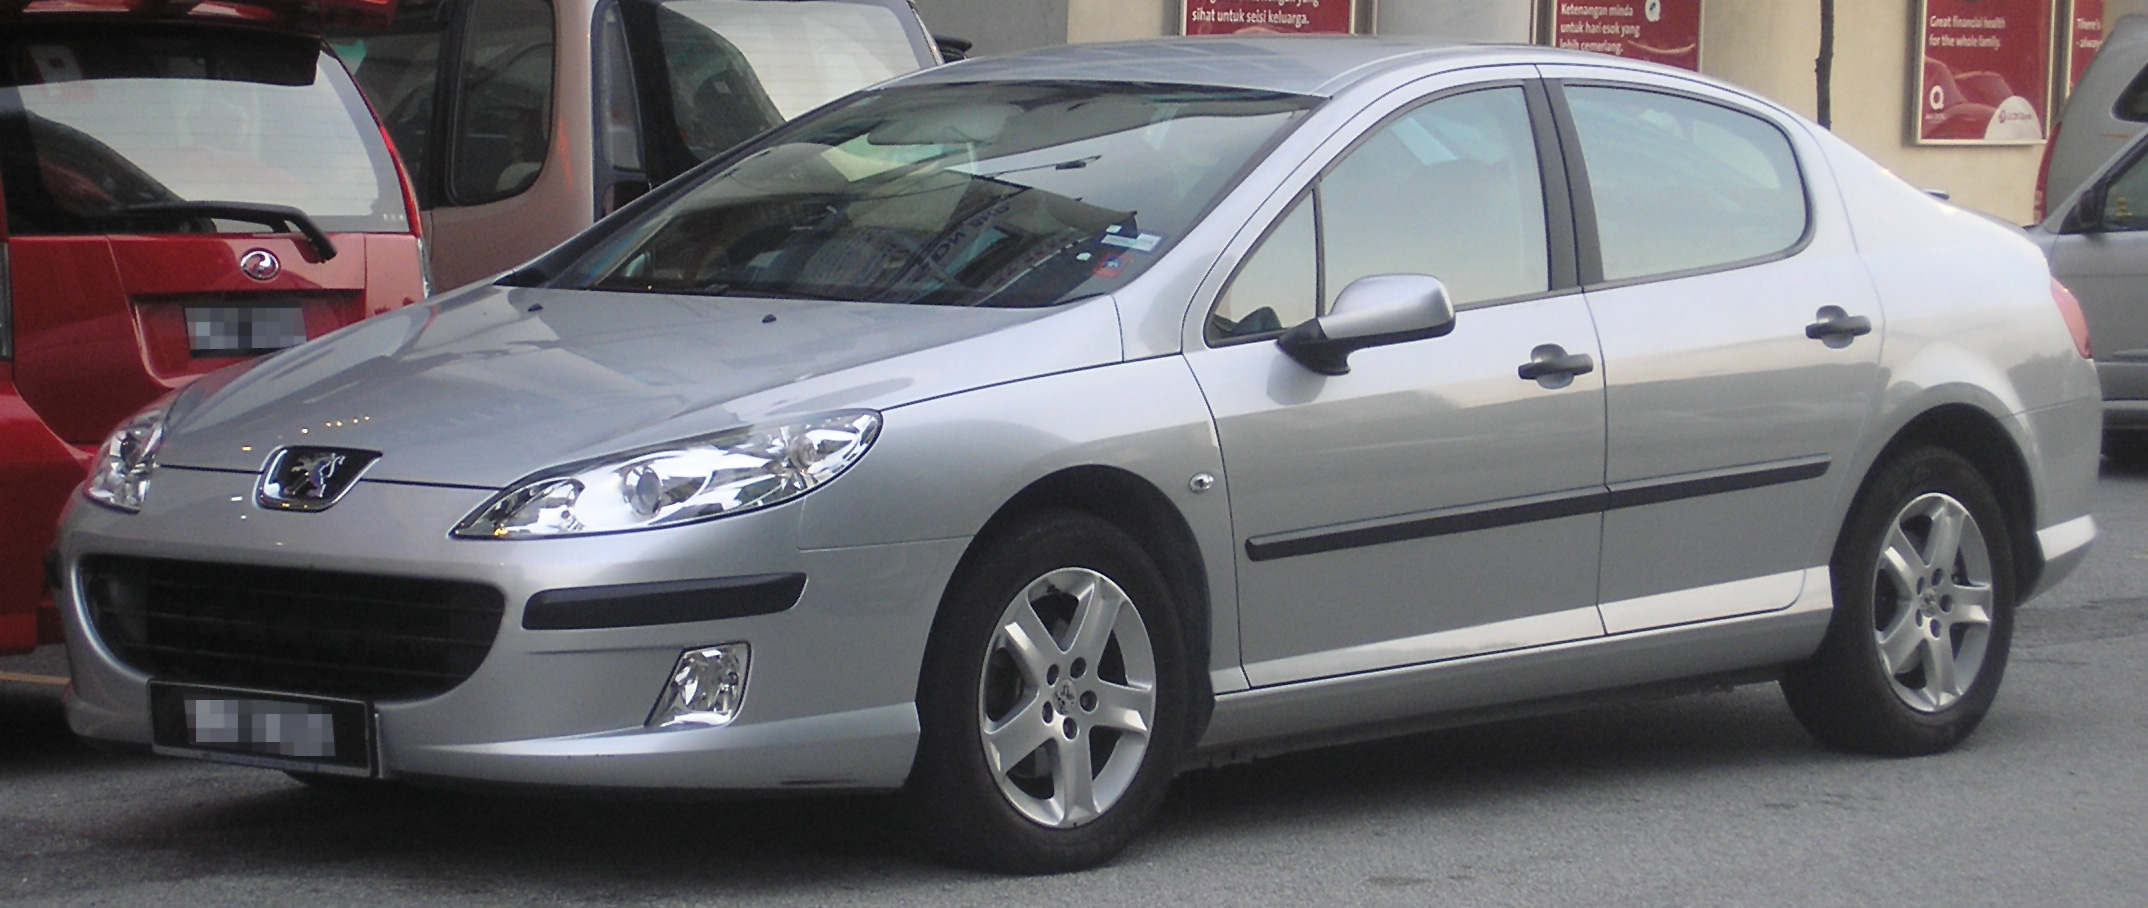 file peugeot 407 first generation front wikimedia commons. Black Bedroom Furniture Sets. Home Design Ideas